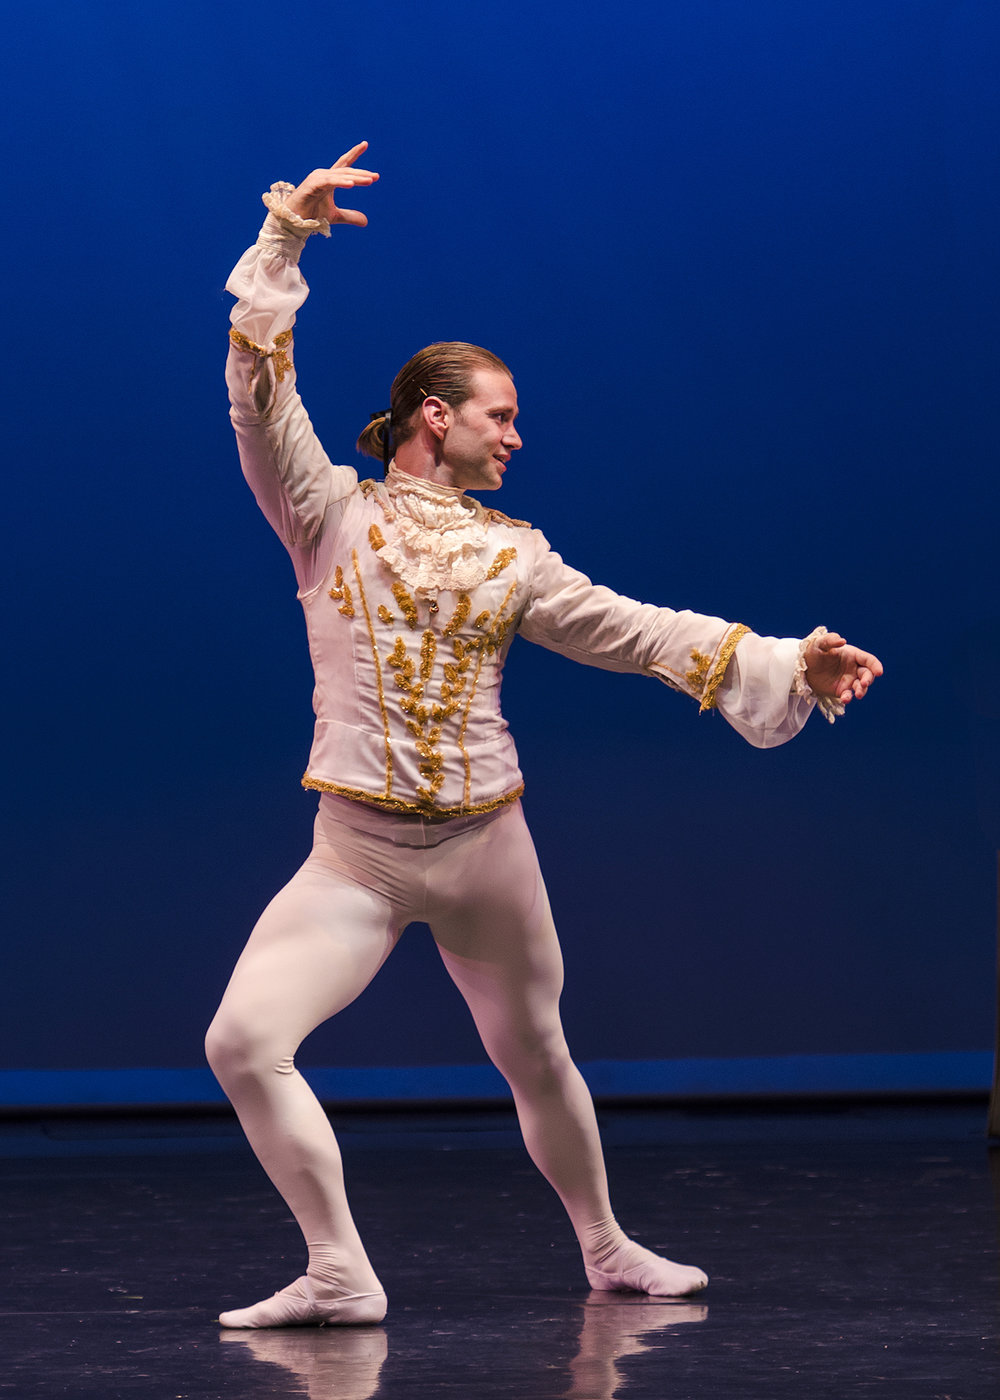 Dancer: Thomas Gant, Jr.